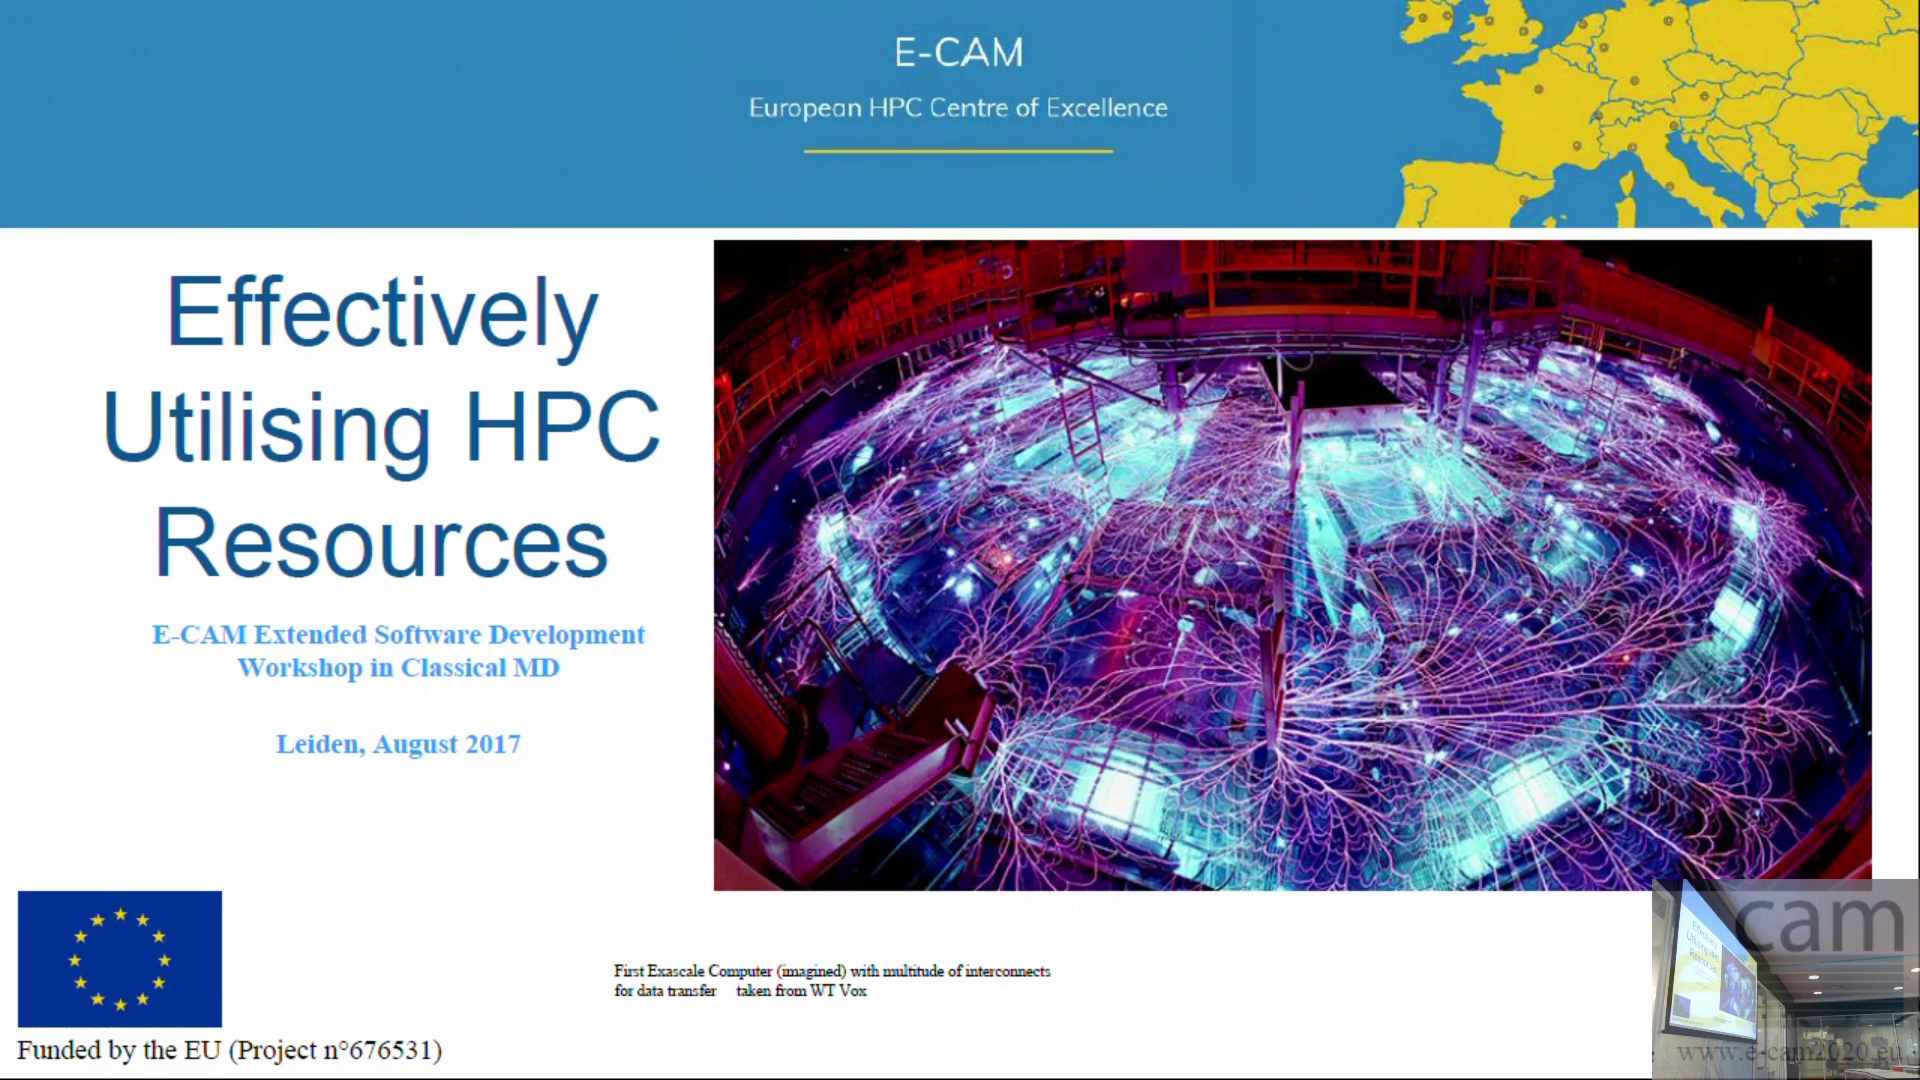 Thumbnail of Effectively Utilizing HPC Resources